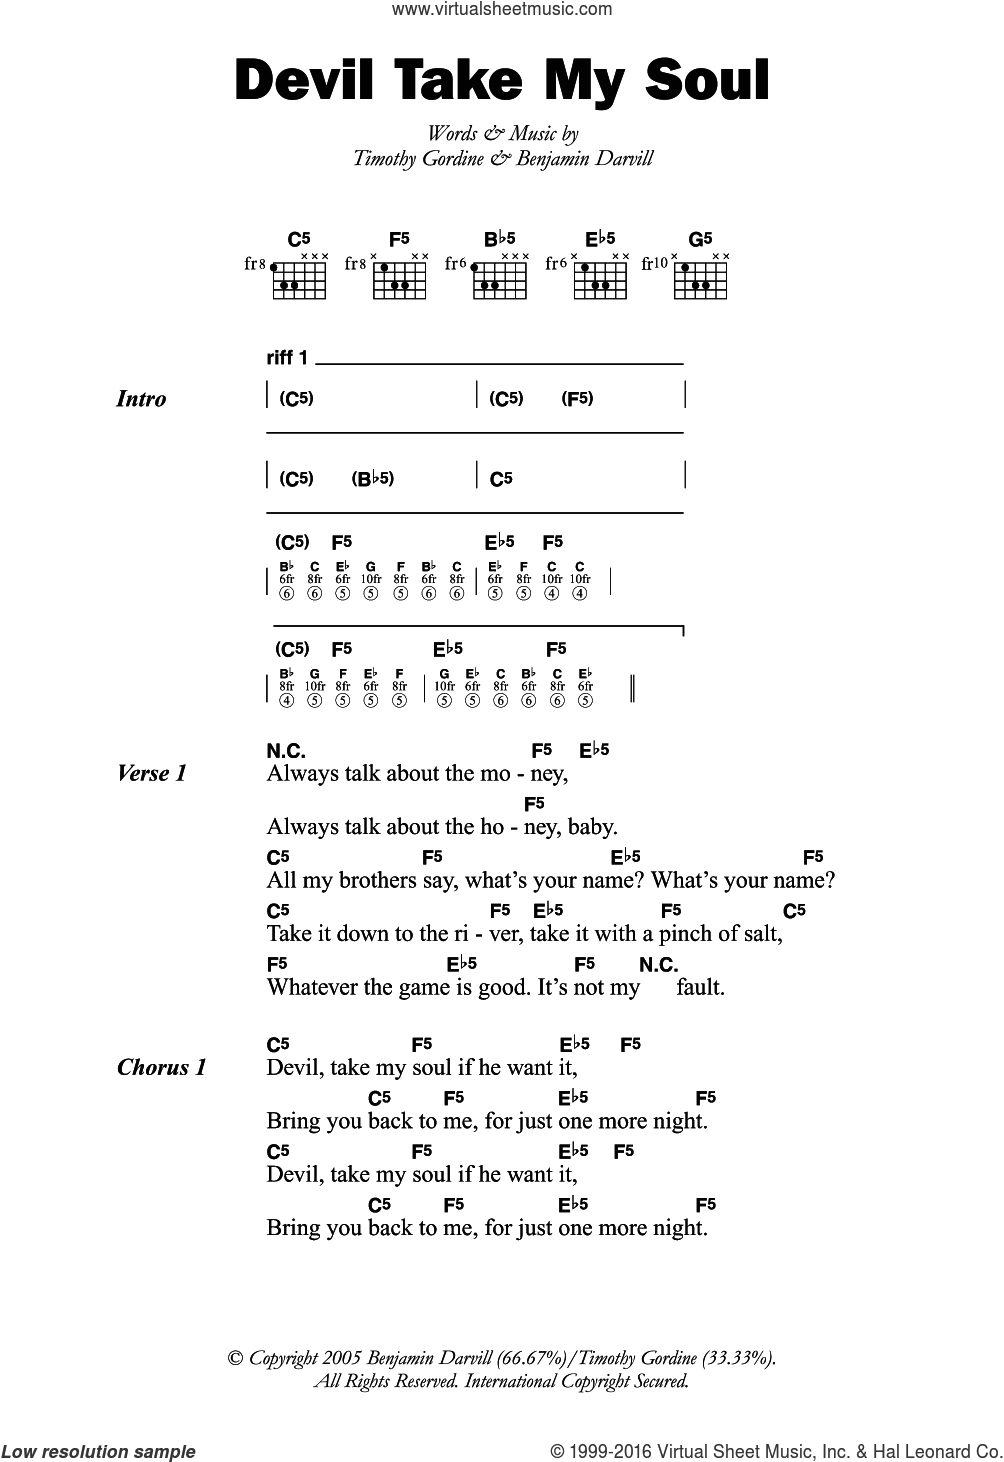 Devil Take My Soul sheet music for guitar (chords) by Son Of Dave, Benjamin Darvill and Timothy Gordine, intermediate skill level